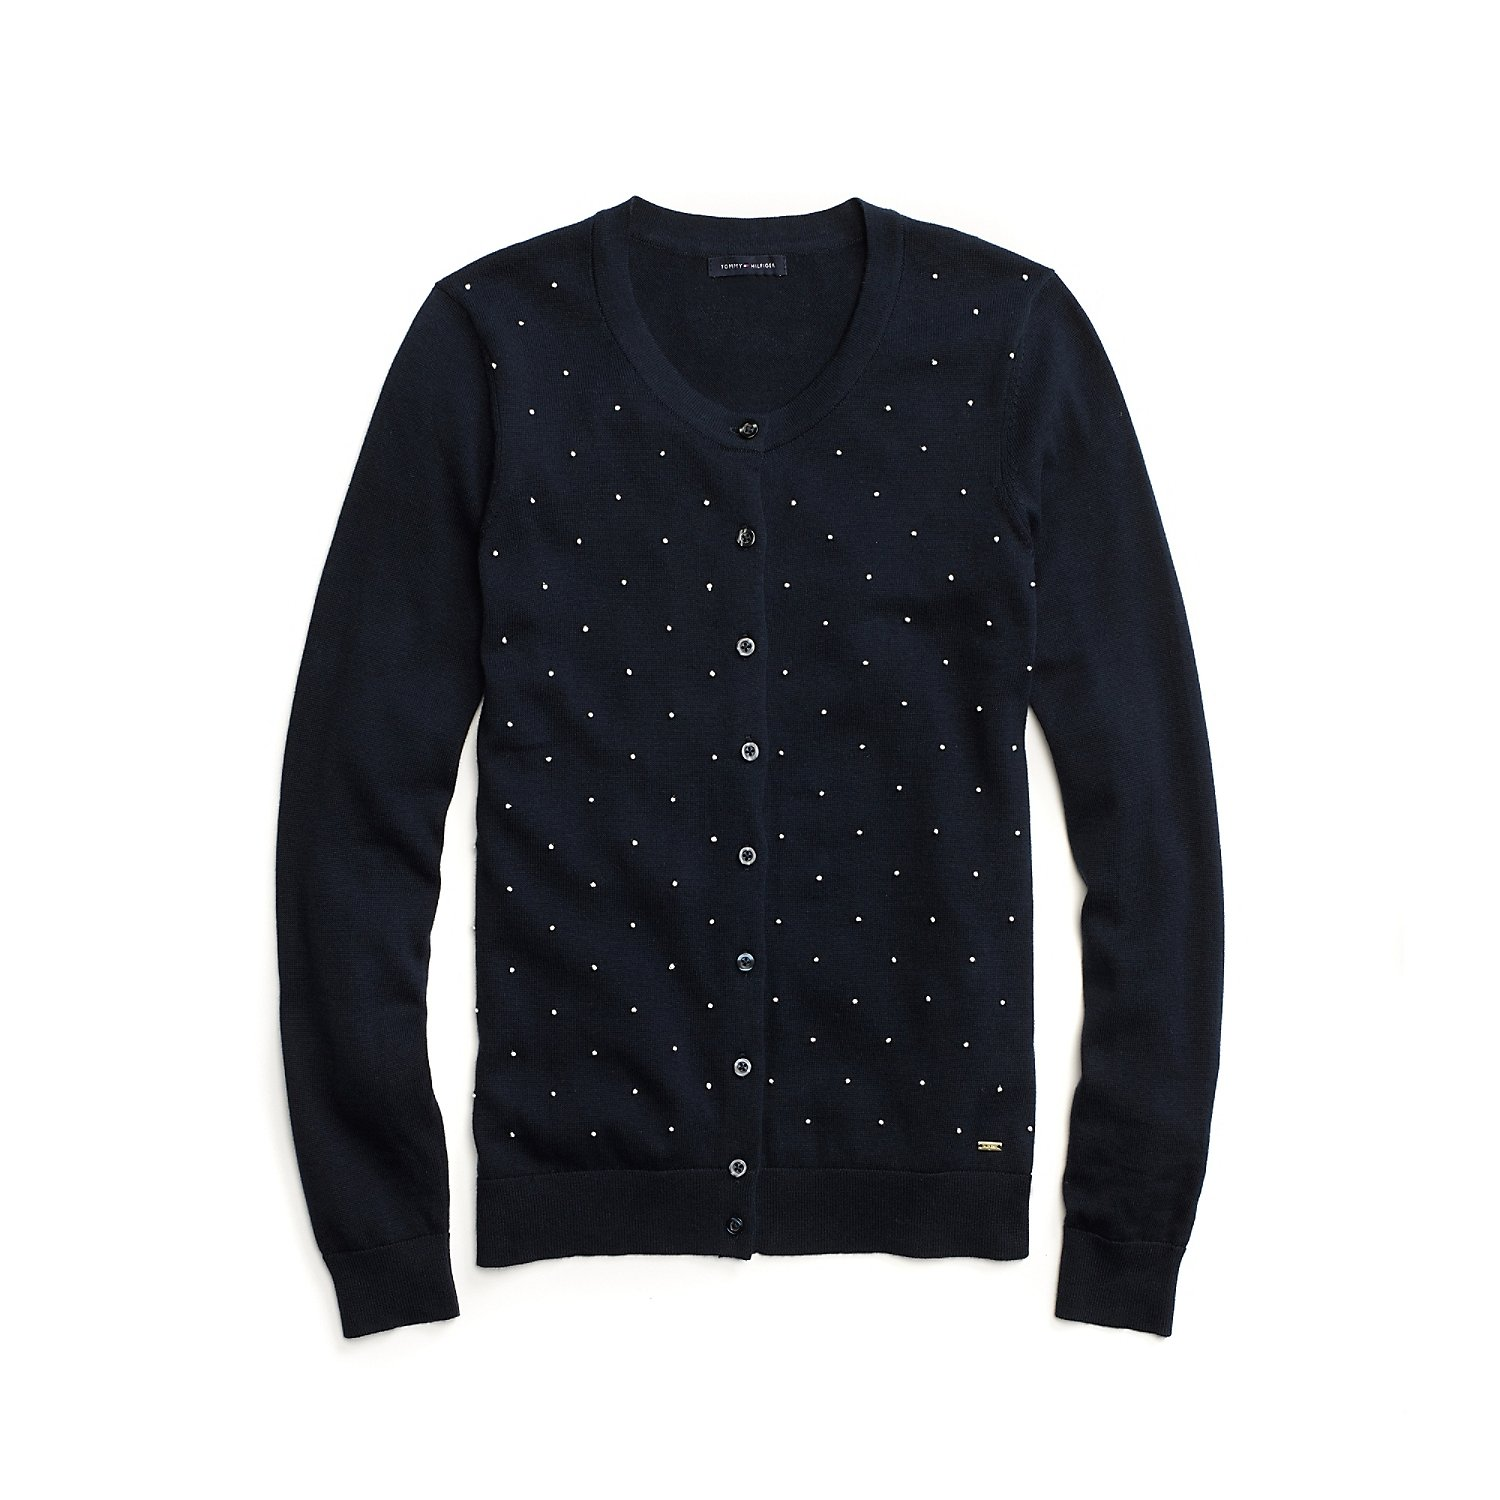 Tommy Hilfiger Women's French Knot Cardigan, Navy